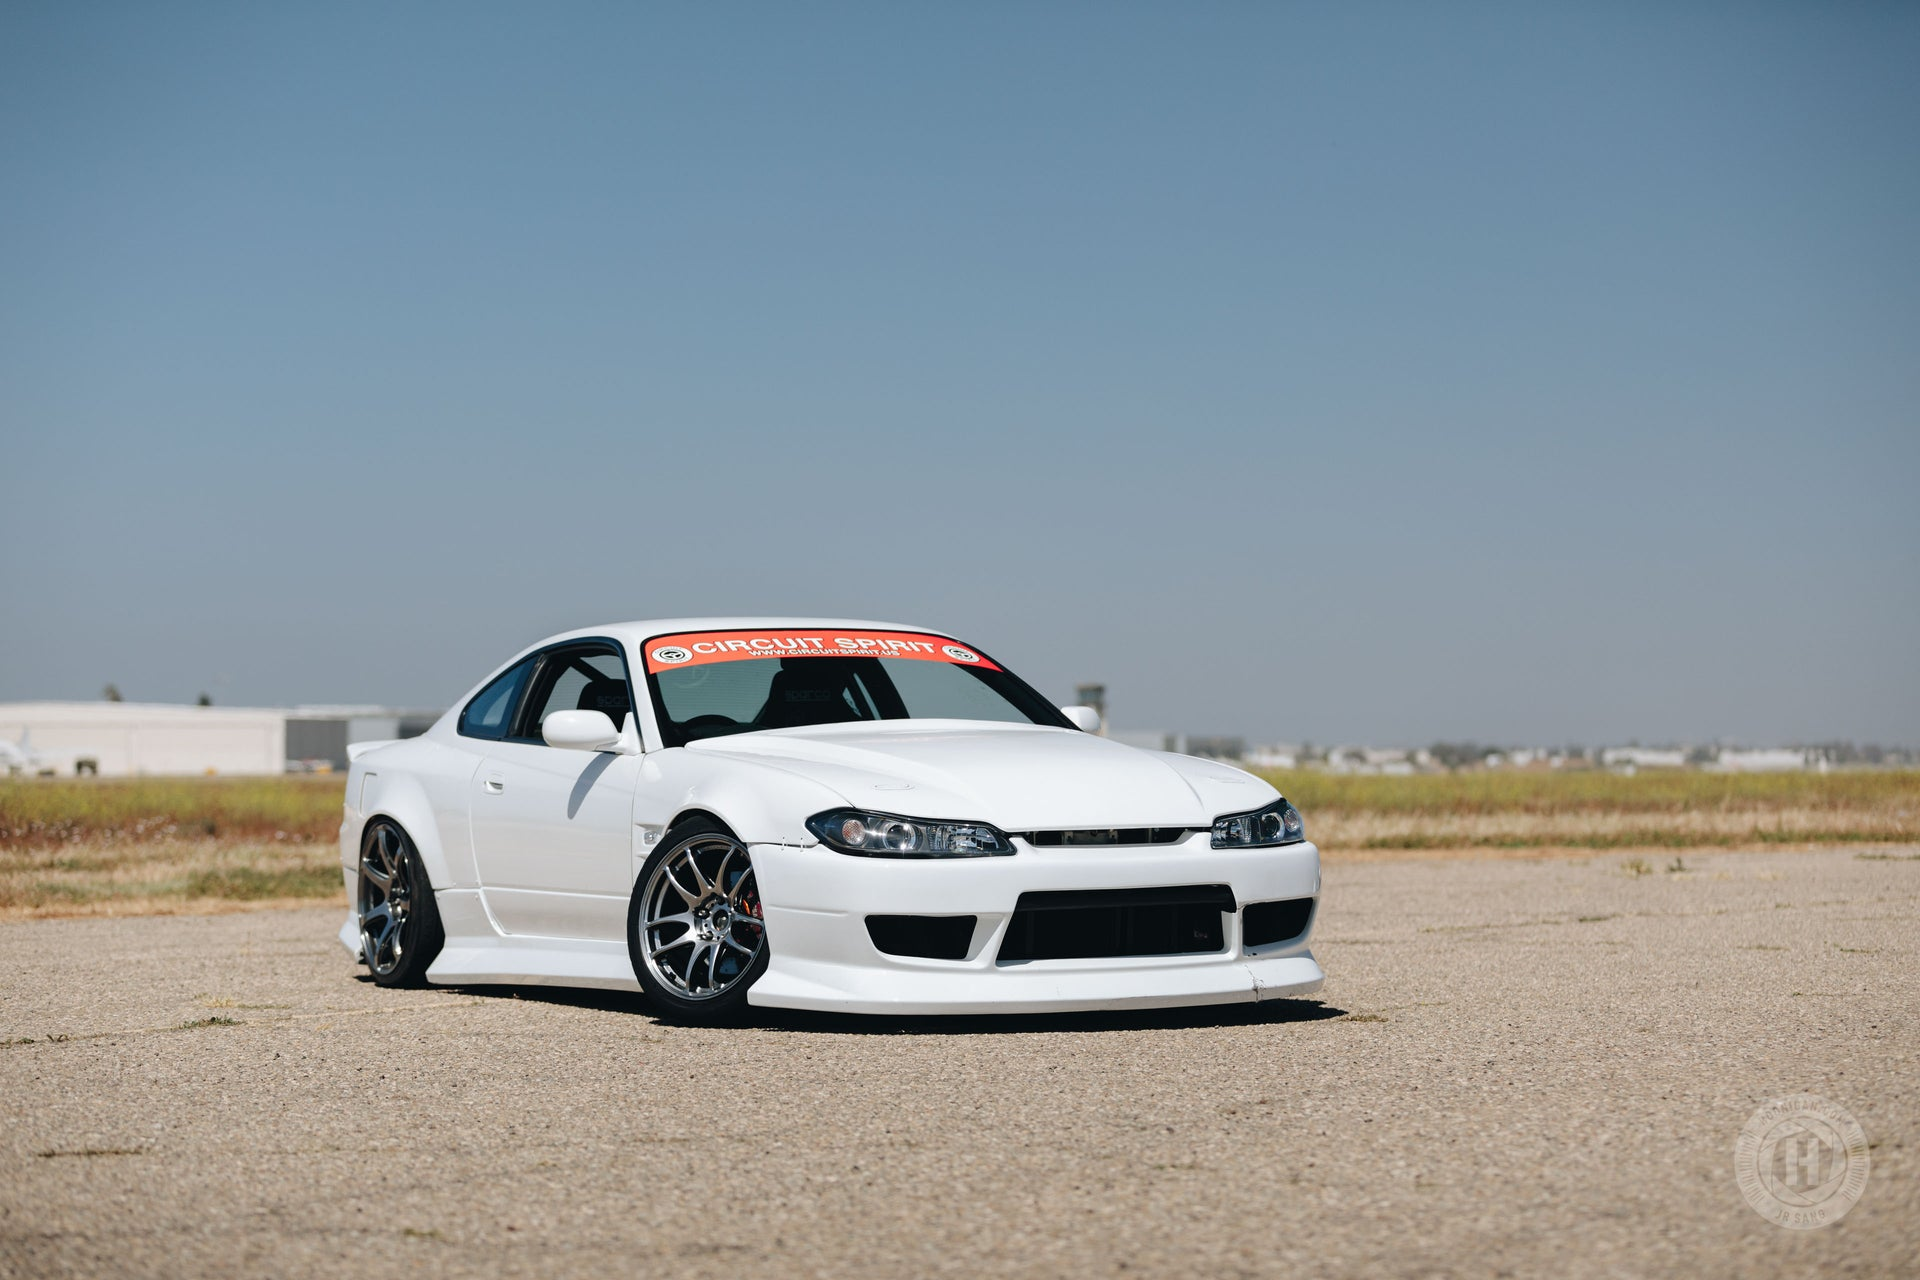 For the Love of the Drift – Cole Seely Nissan S15 Silvia